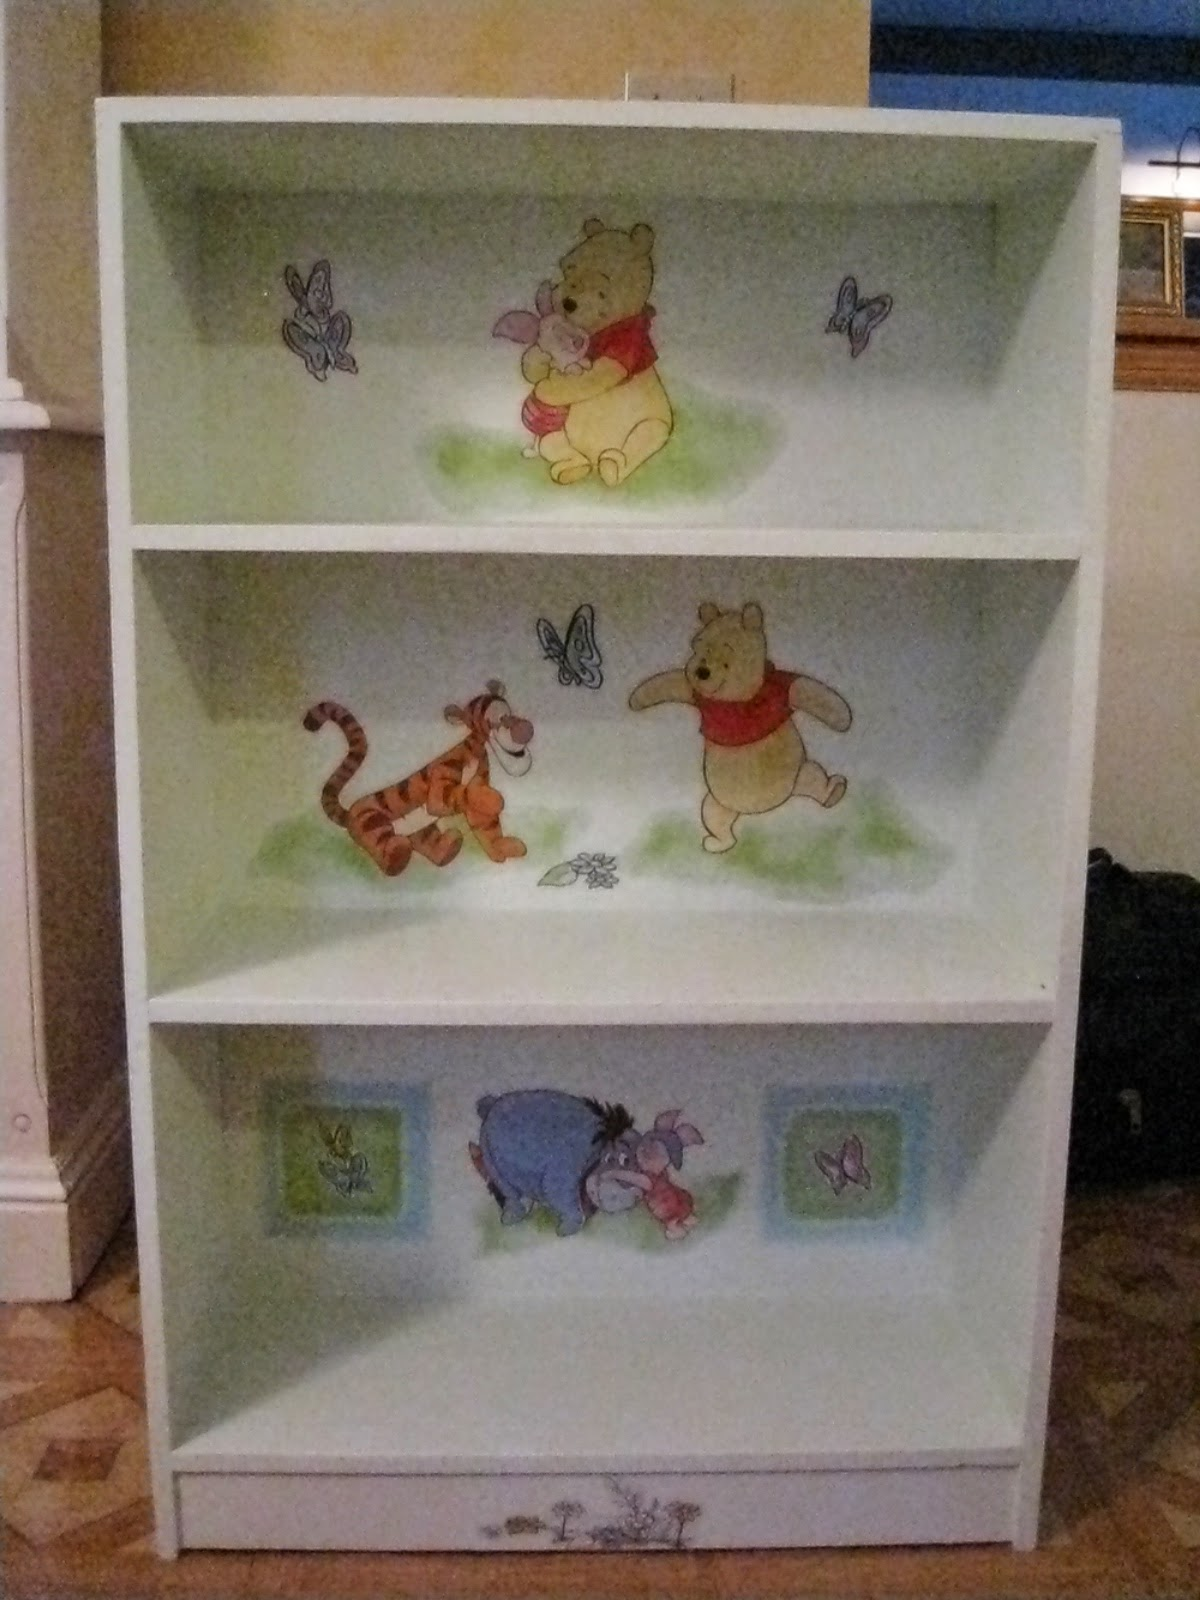 And Bookcase La Winnie The Pooh Sorry About Poor Photo Resolution Light In My Dining Room Makes Taking Pictures More Than A Little Challenging